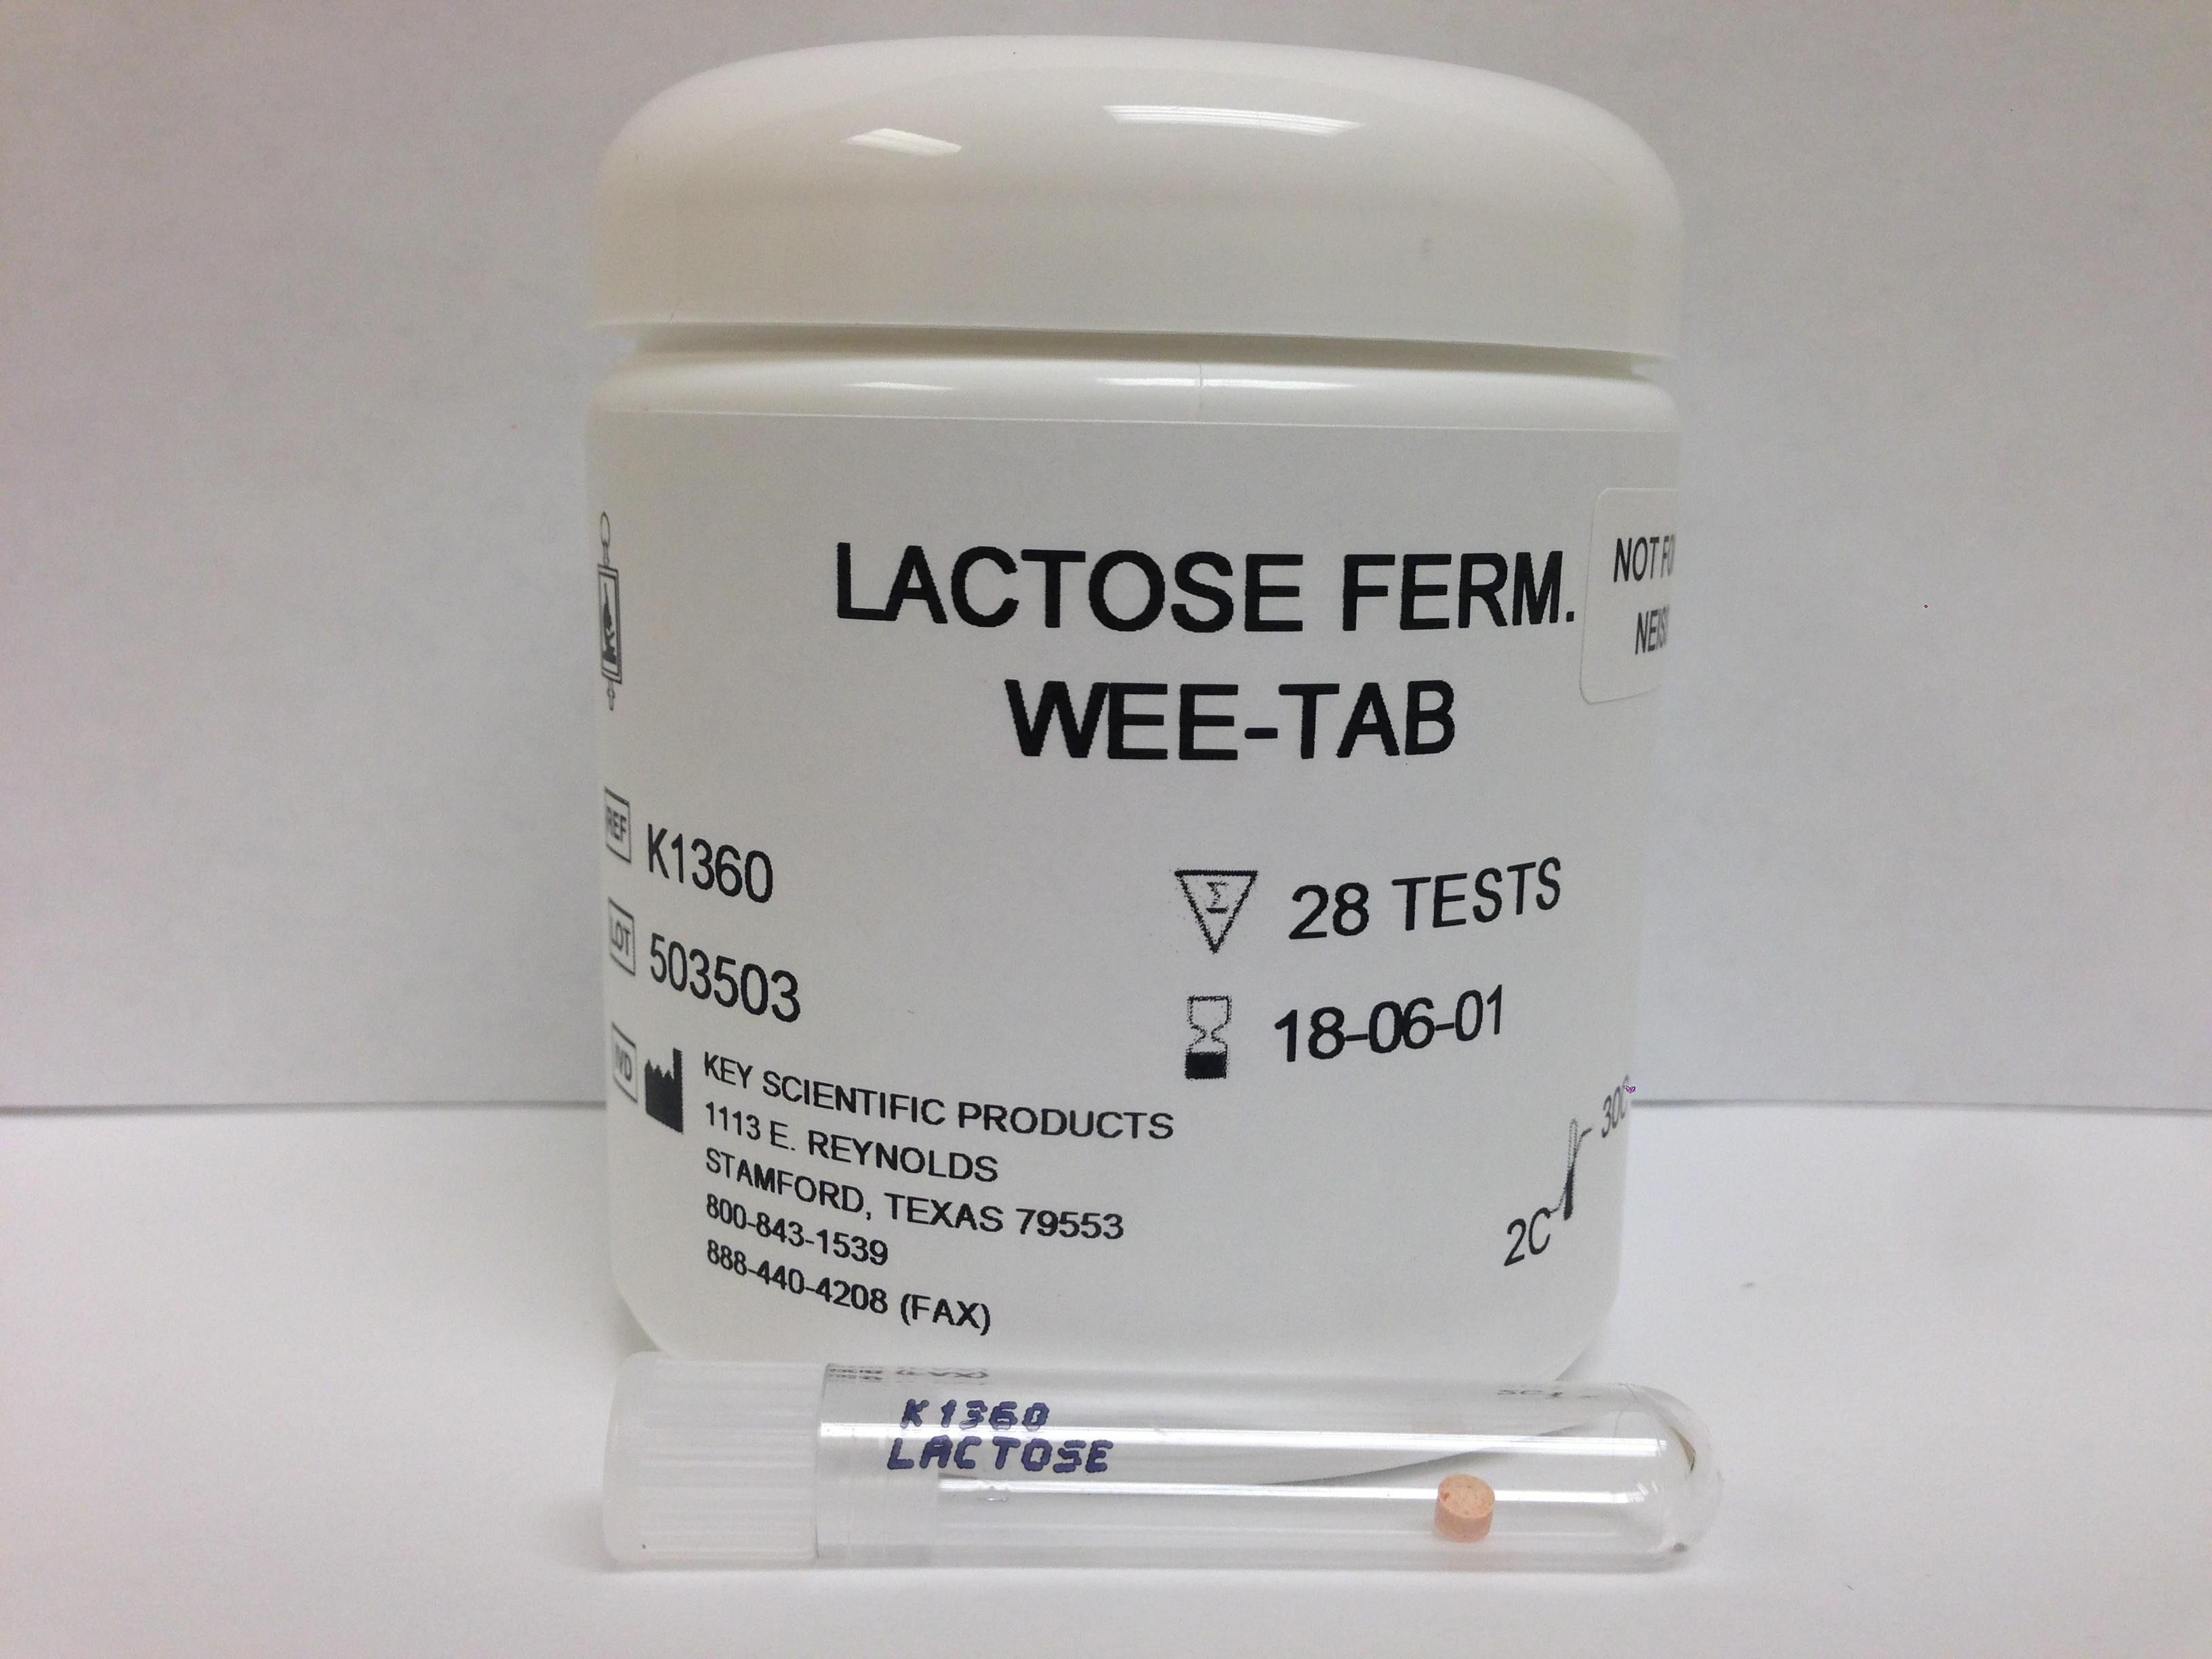 WEE-TAB LACTOSE FERMENTATION